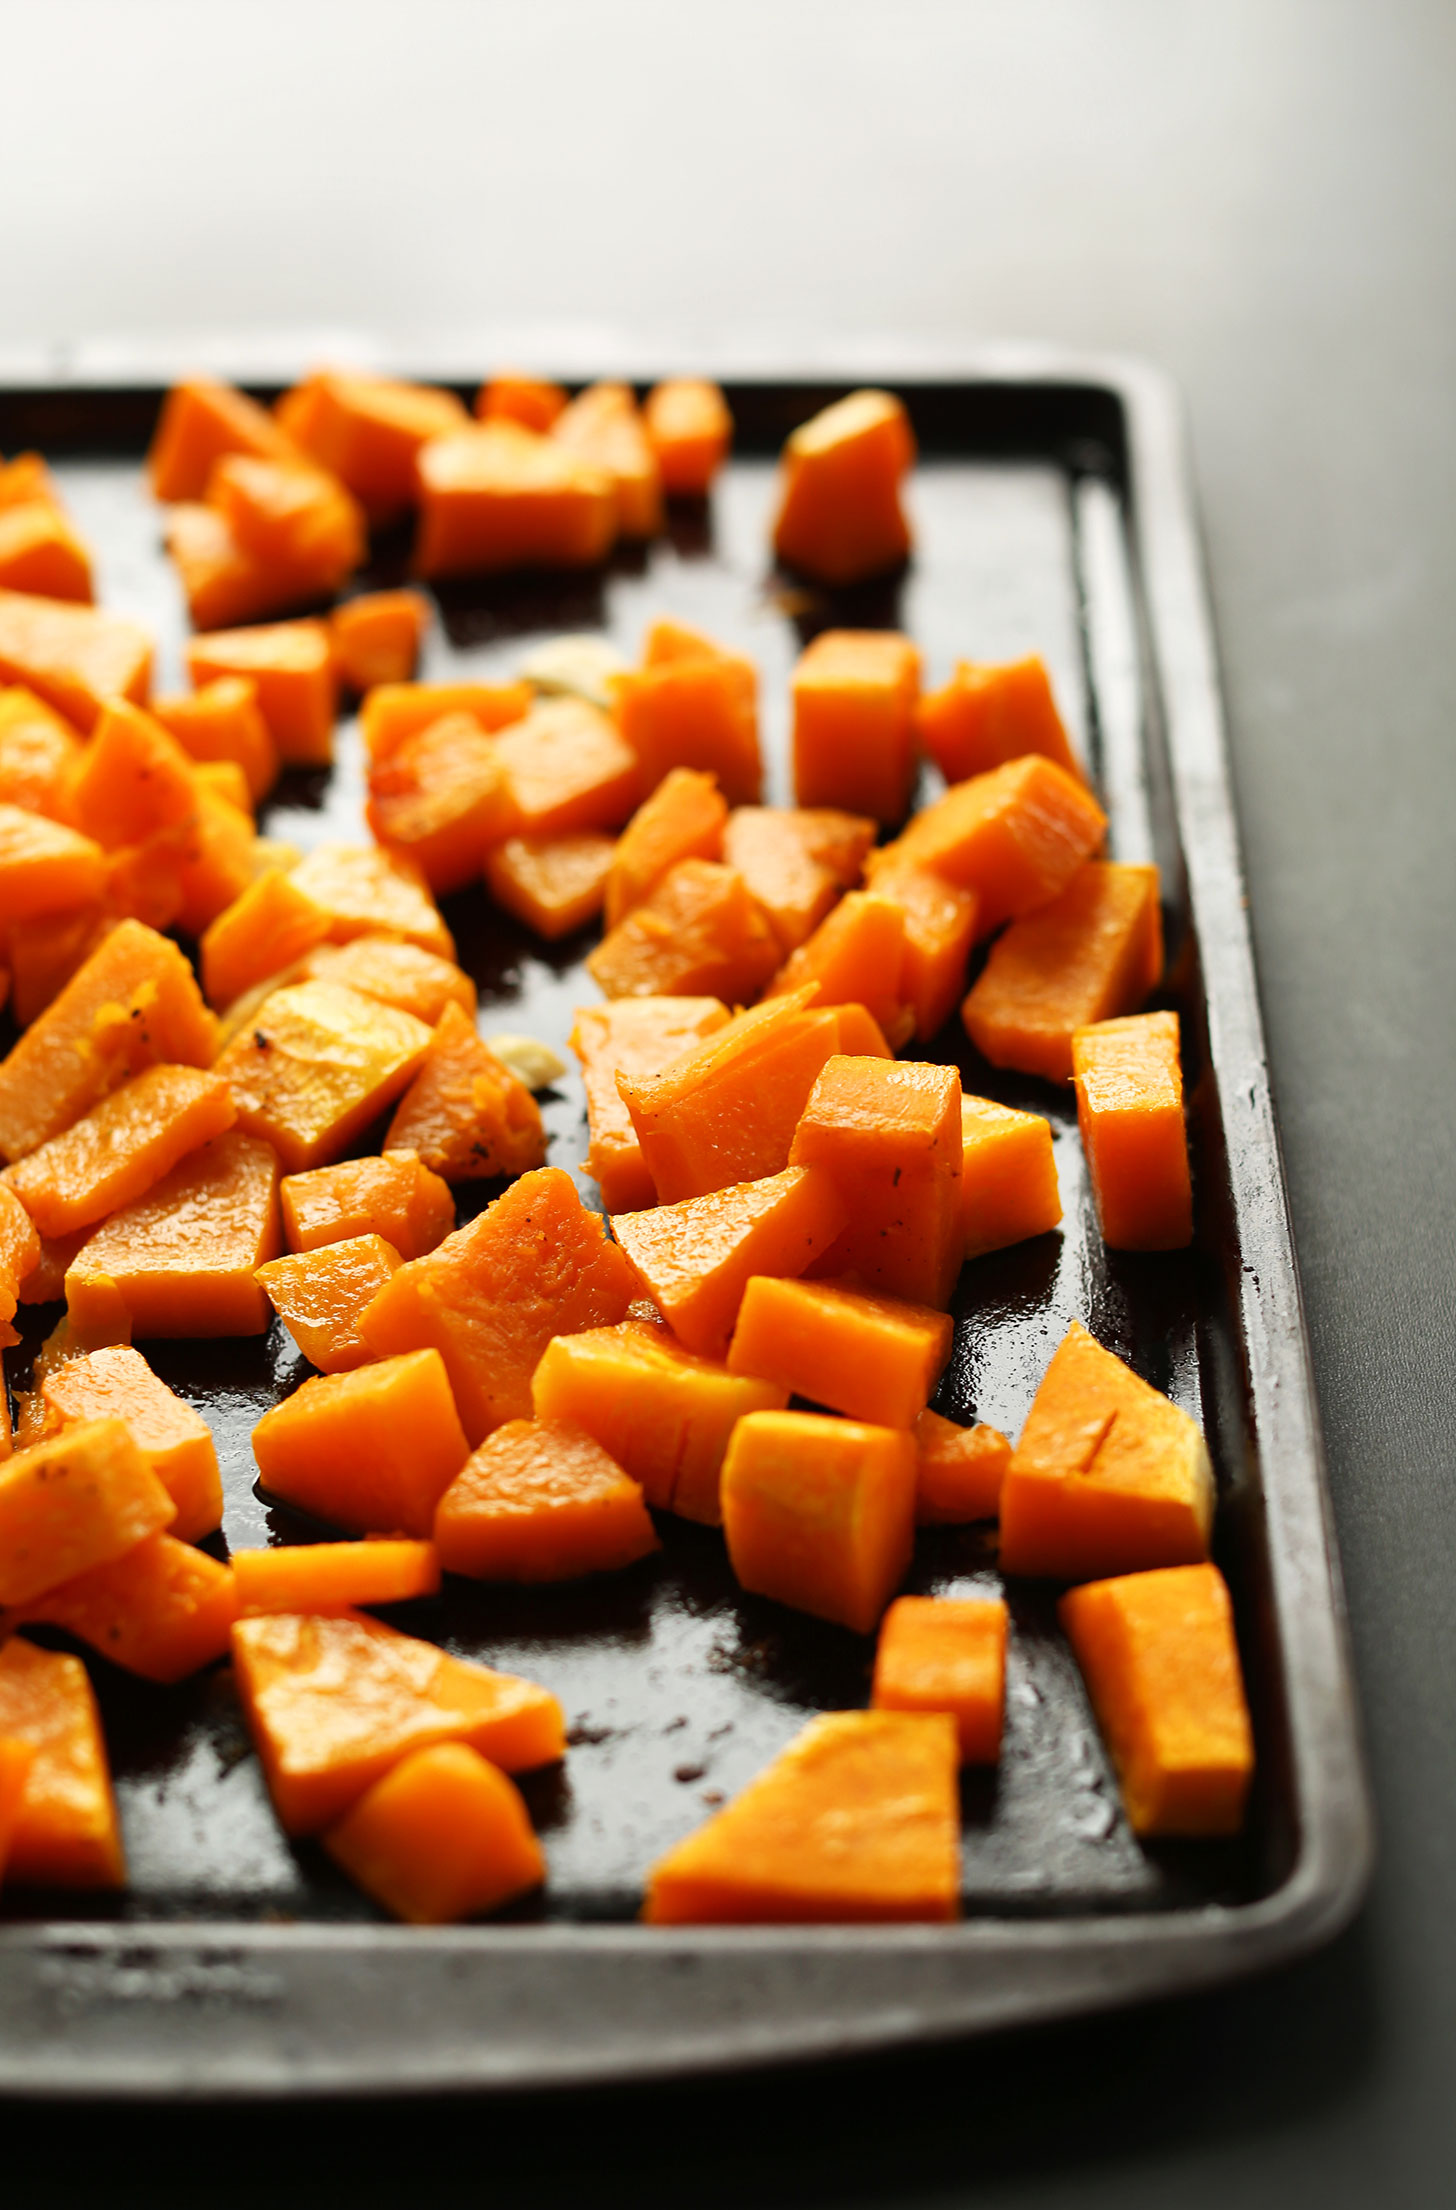 Baking sheet filled with cubes of perfectly roasted butternut squash